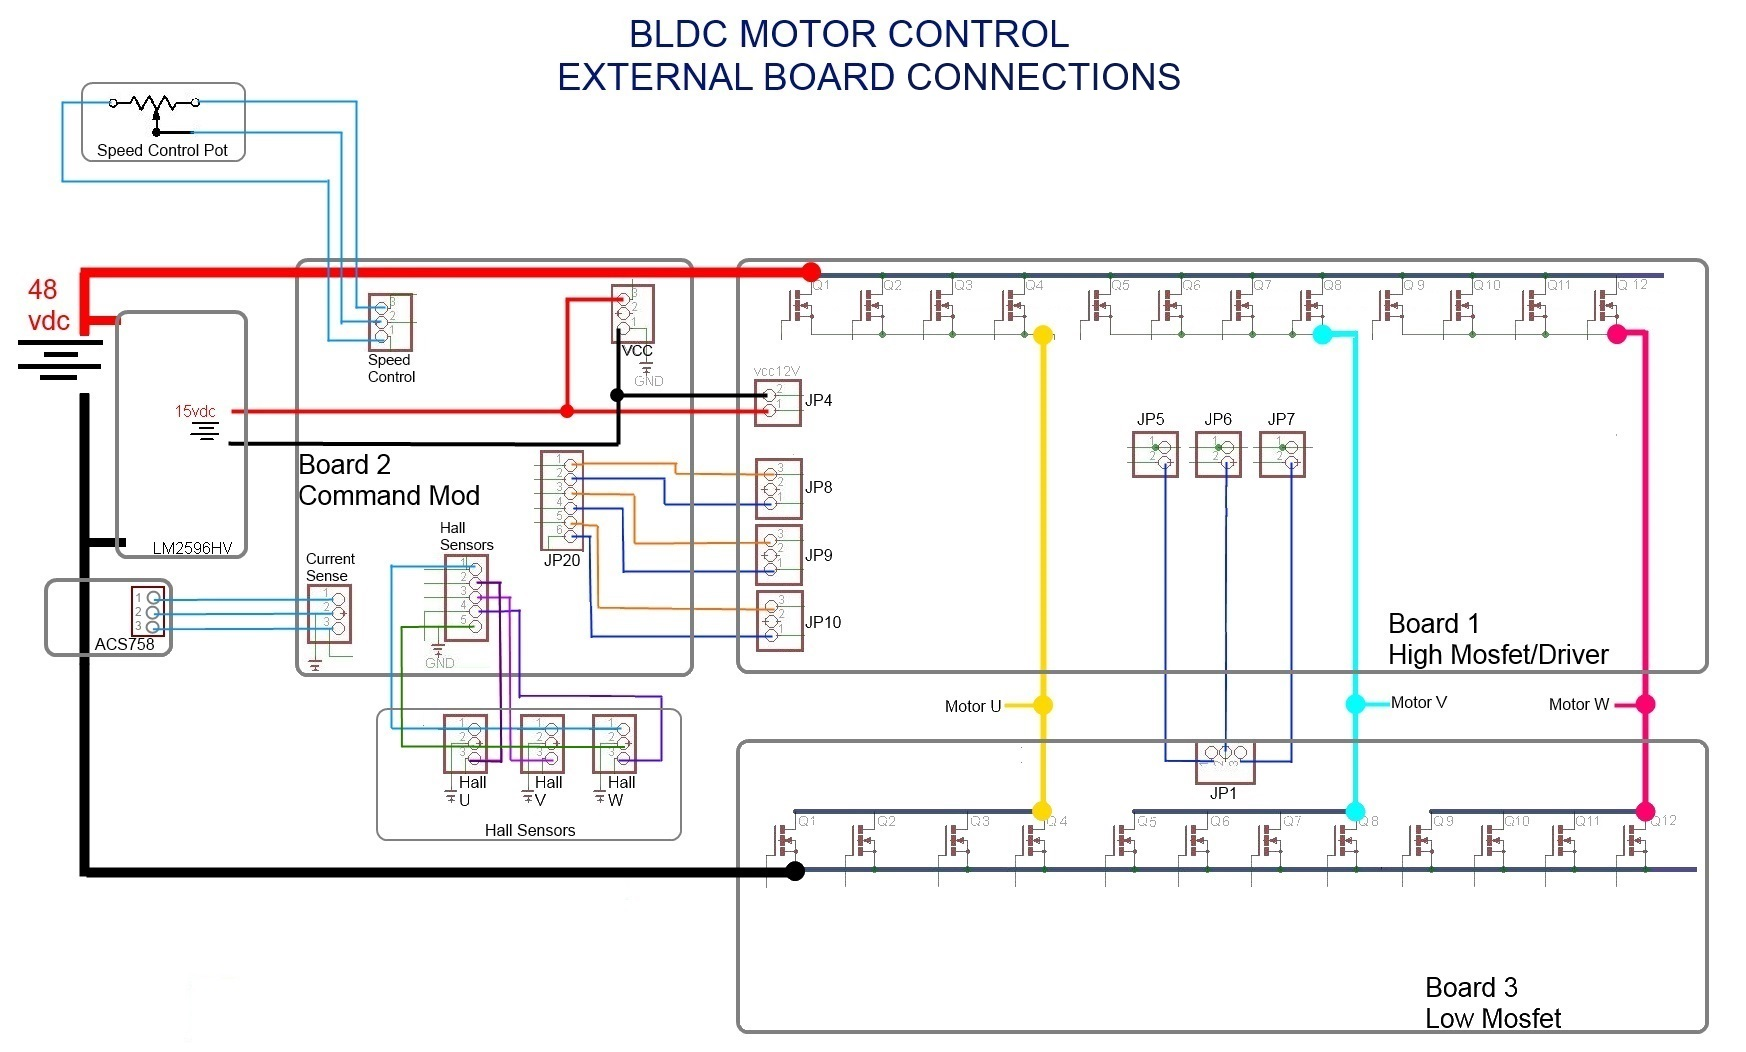 single phase motor control panel wiring diagram images motor motor controller schematic on images of wiring diagrams 3 phase elect